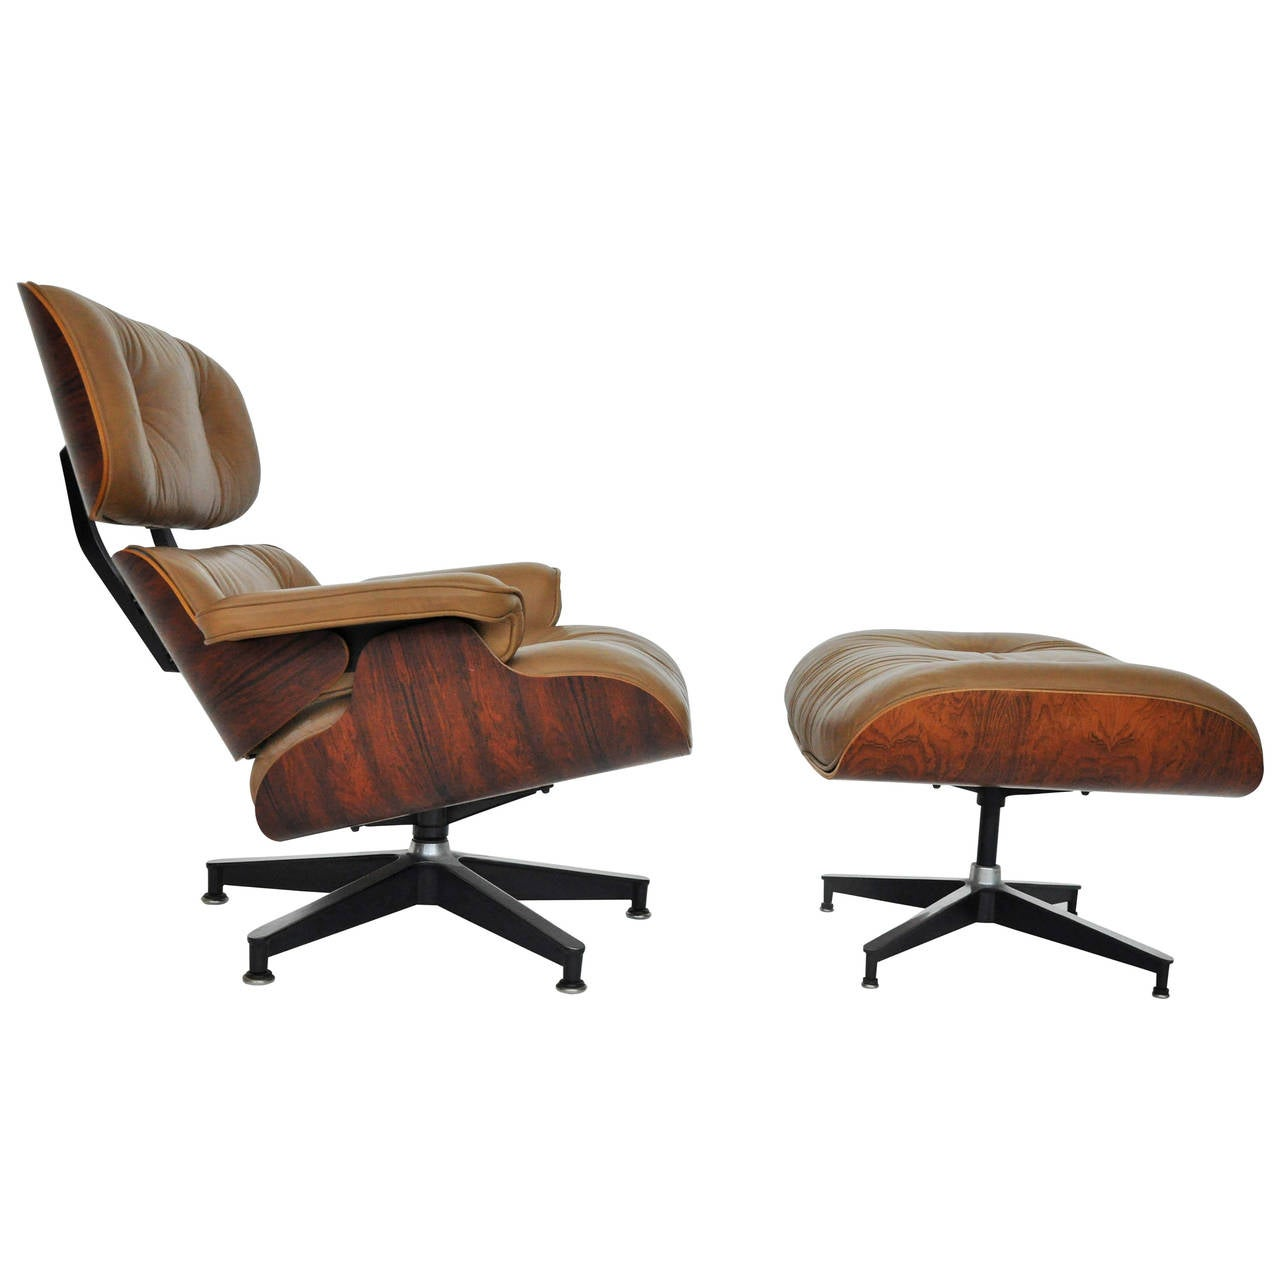 Rosewood Charles Eames Lounge Chair For Herman Miller At Stdibs - Charles eames lounge chair